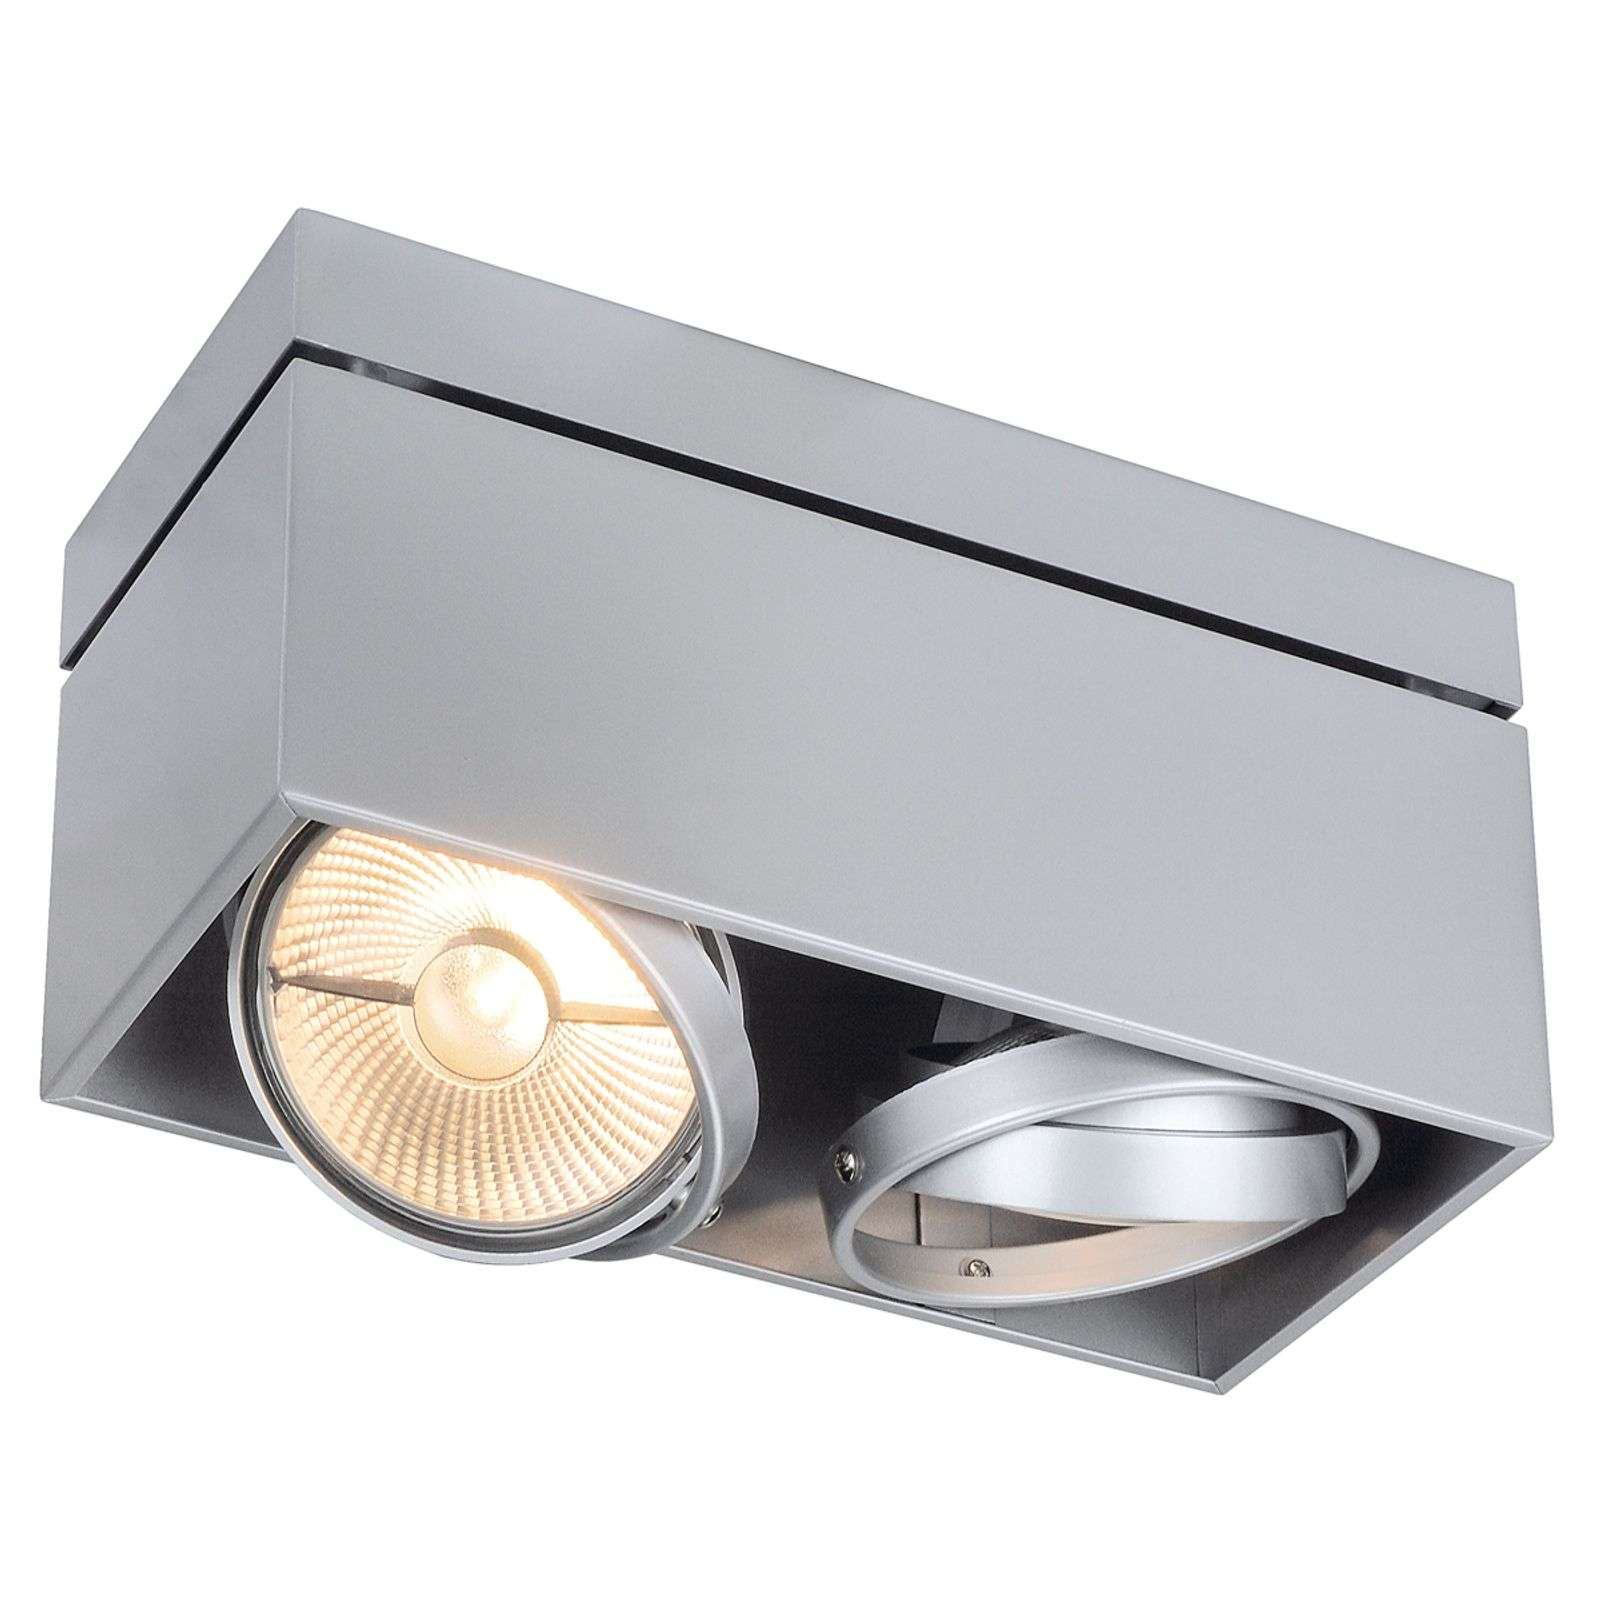 Kardamod Surface Double ES 111 plafondlamp